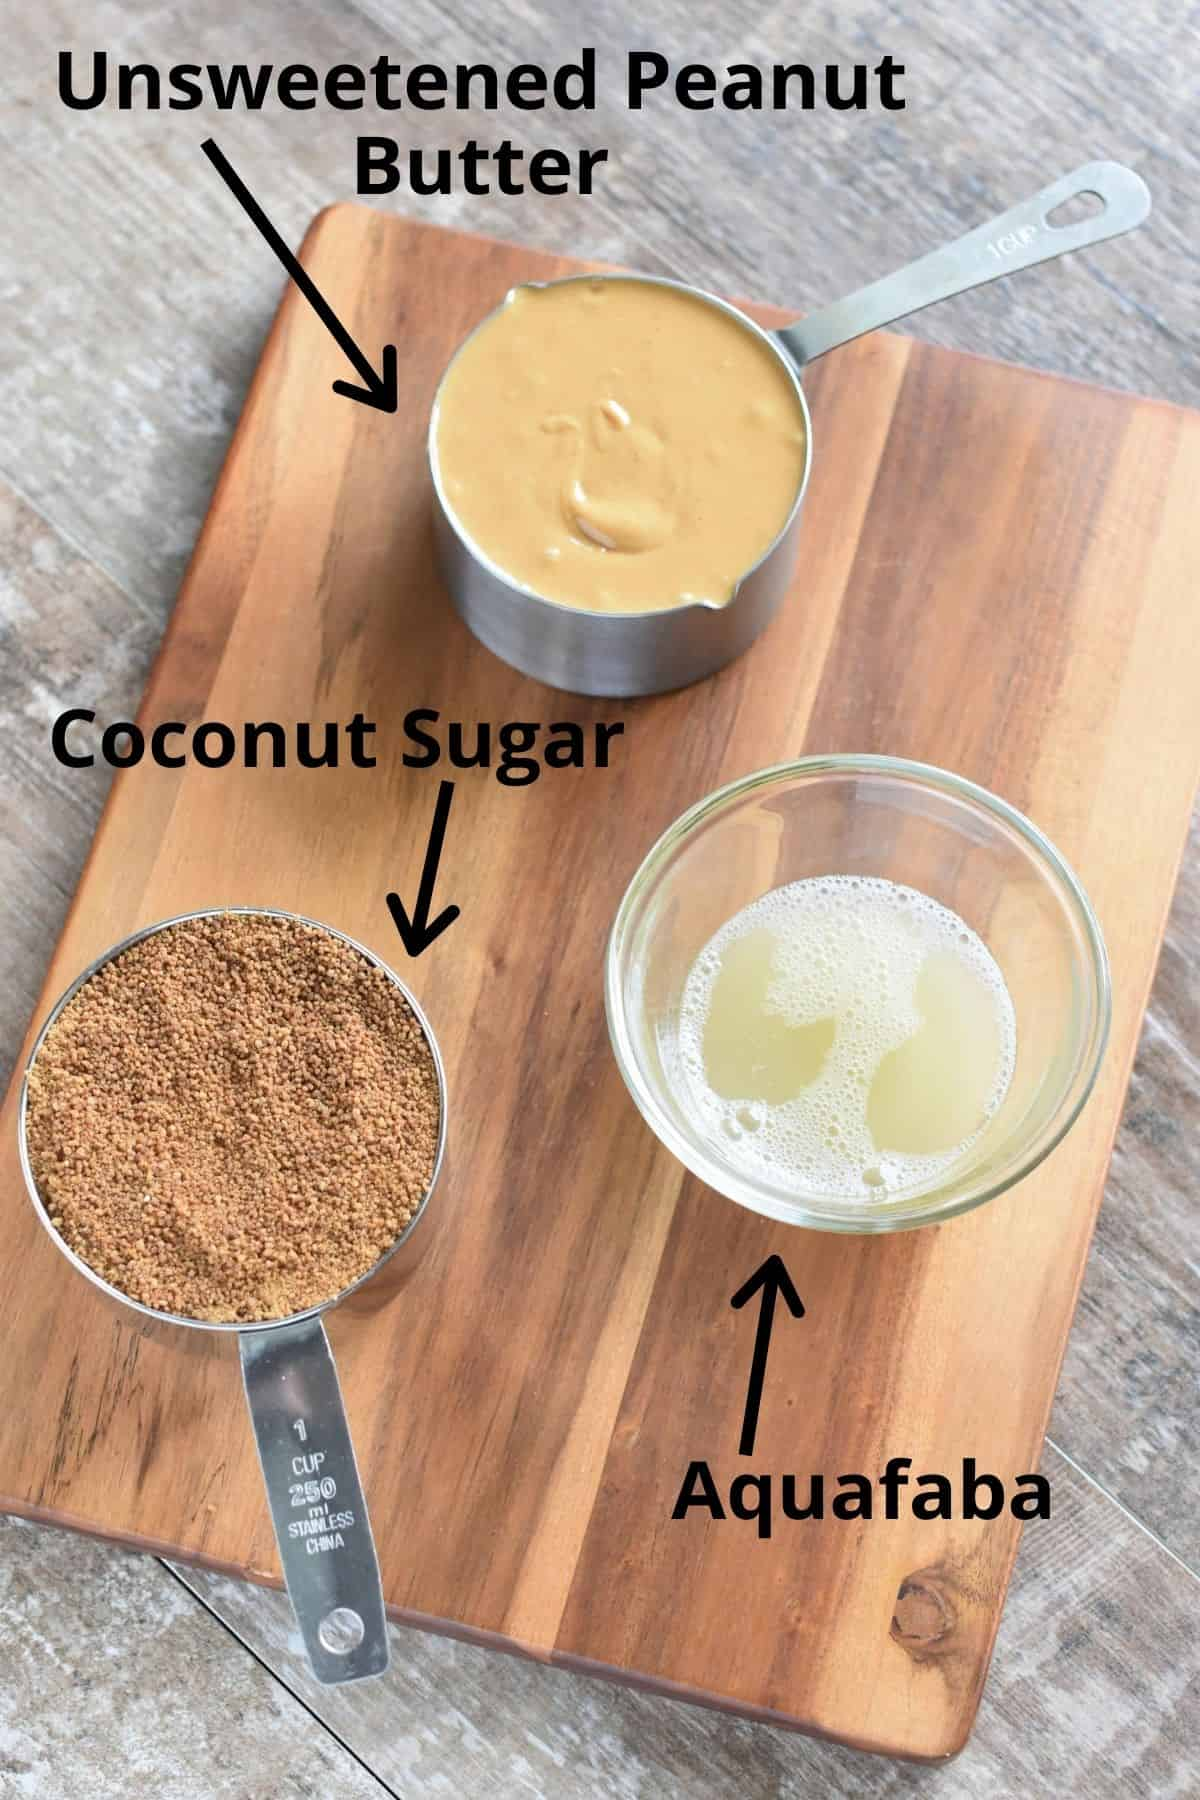 ingredients on a wooden board and labeled